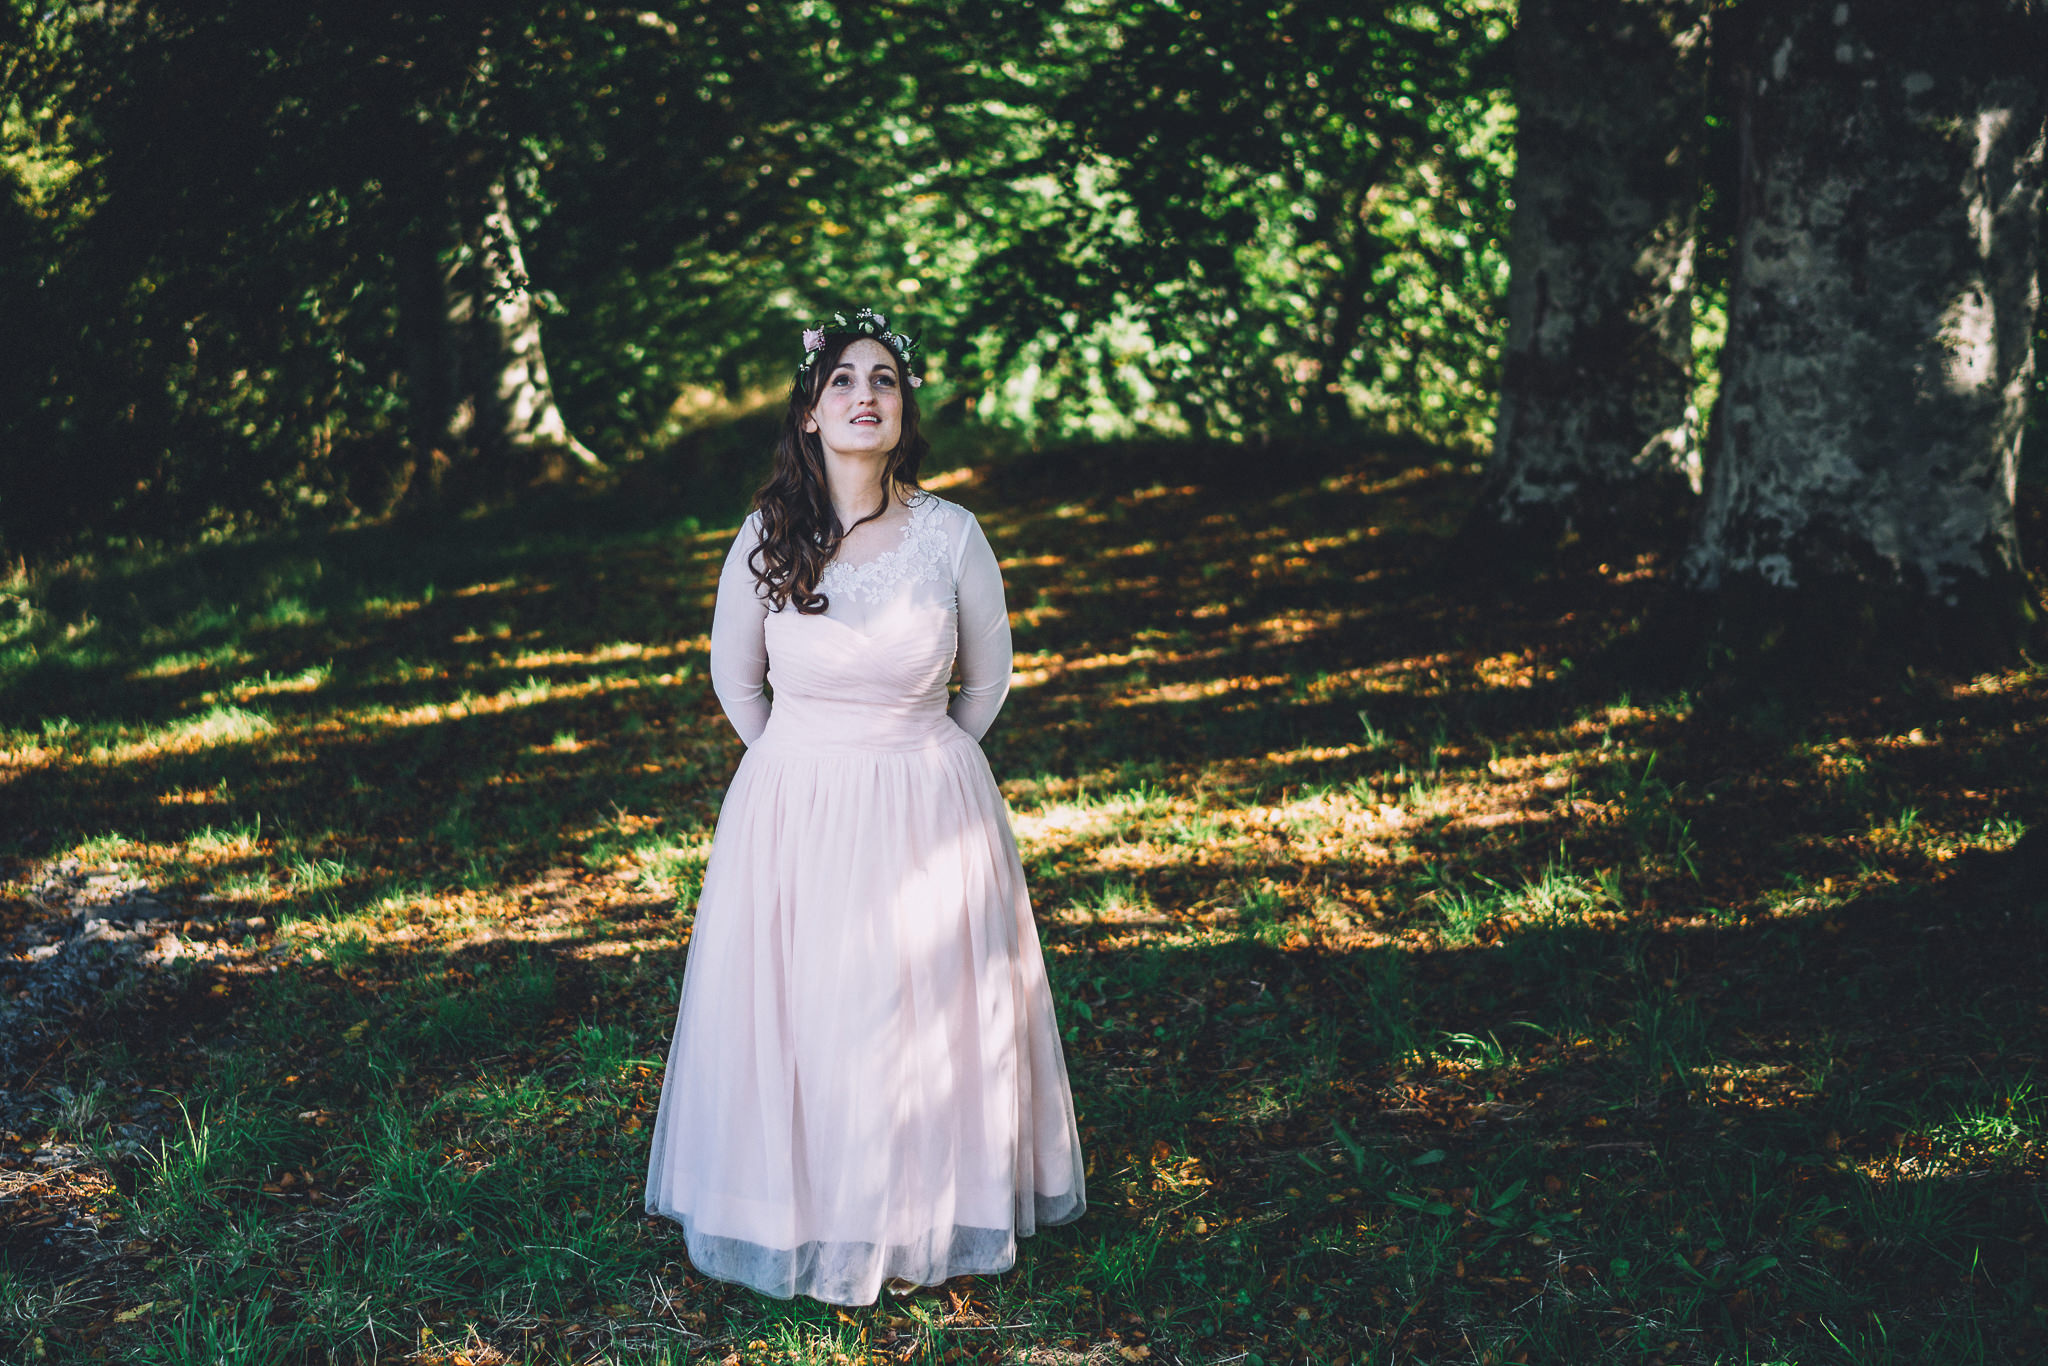 paul-marbrook-Fforest-Wedding-Photographer-90017